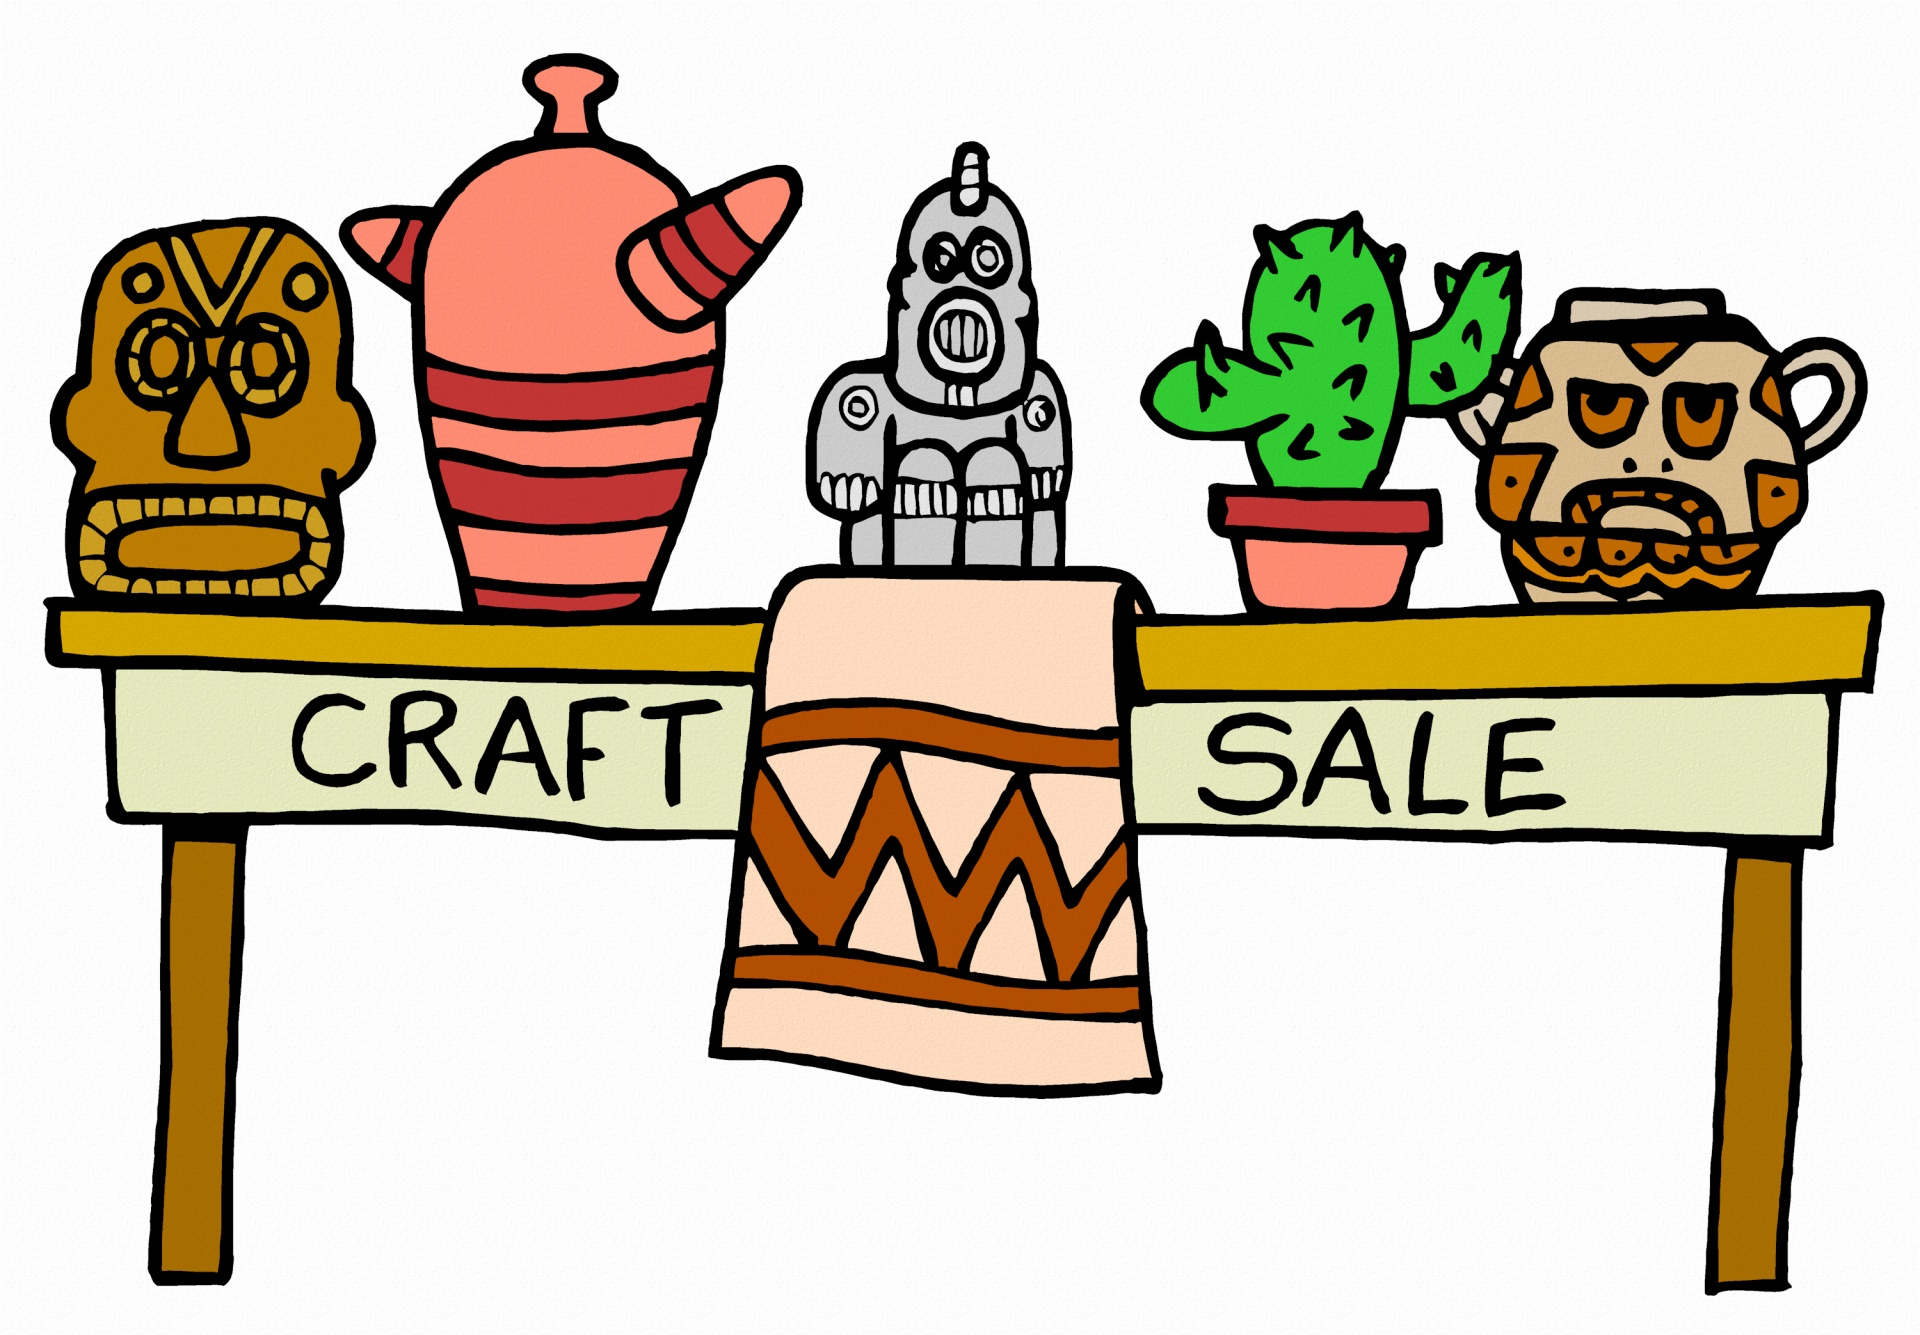 Top 30 Places To Handmade Crafts Online In 2019 99businessideas